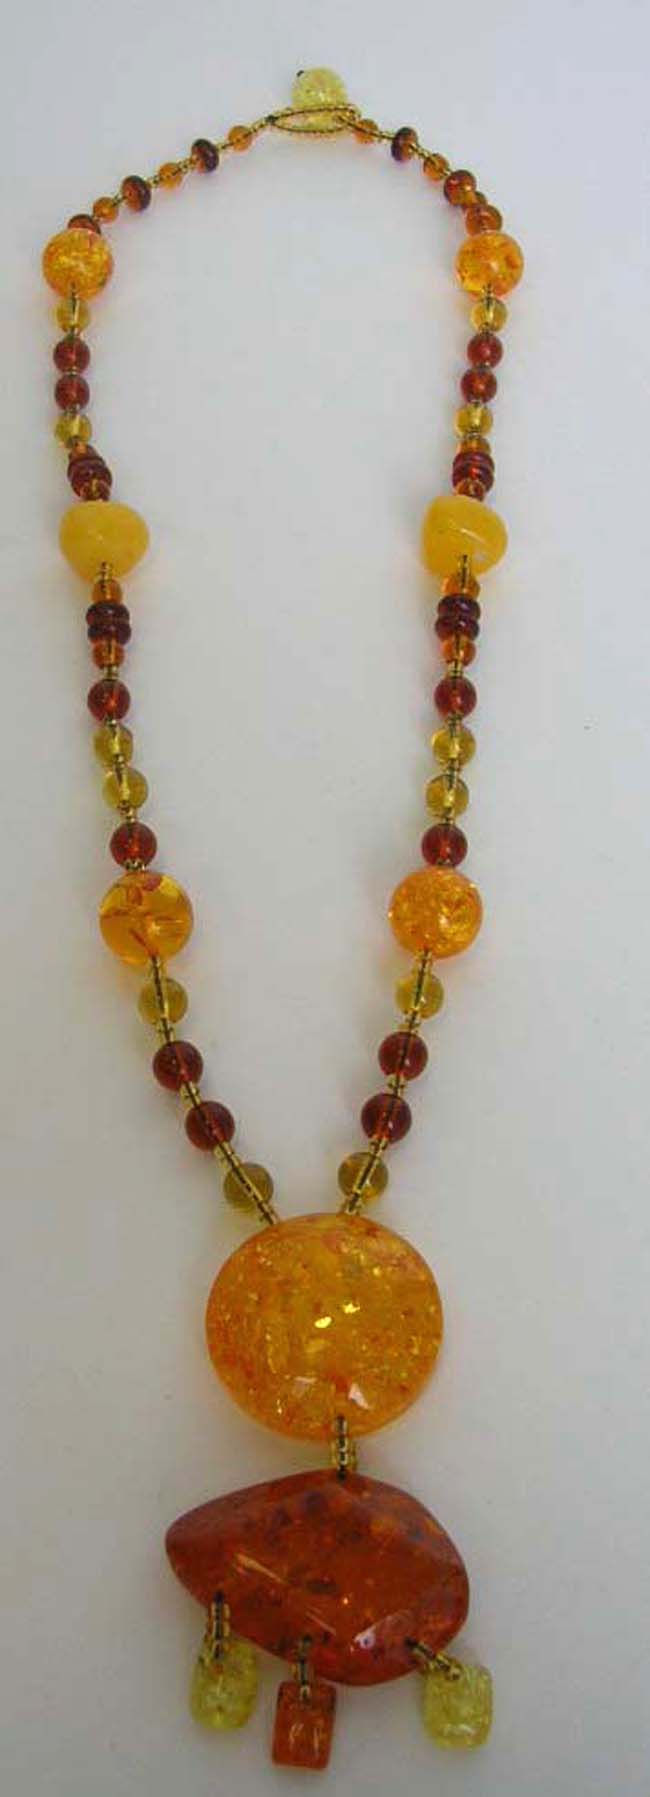 Fashion amber necklace with 2 amber holding mini amber ...